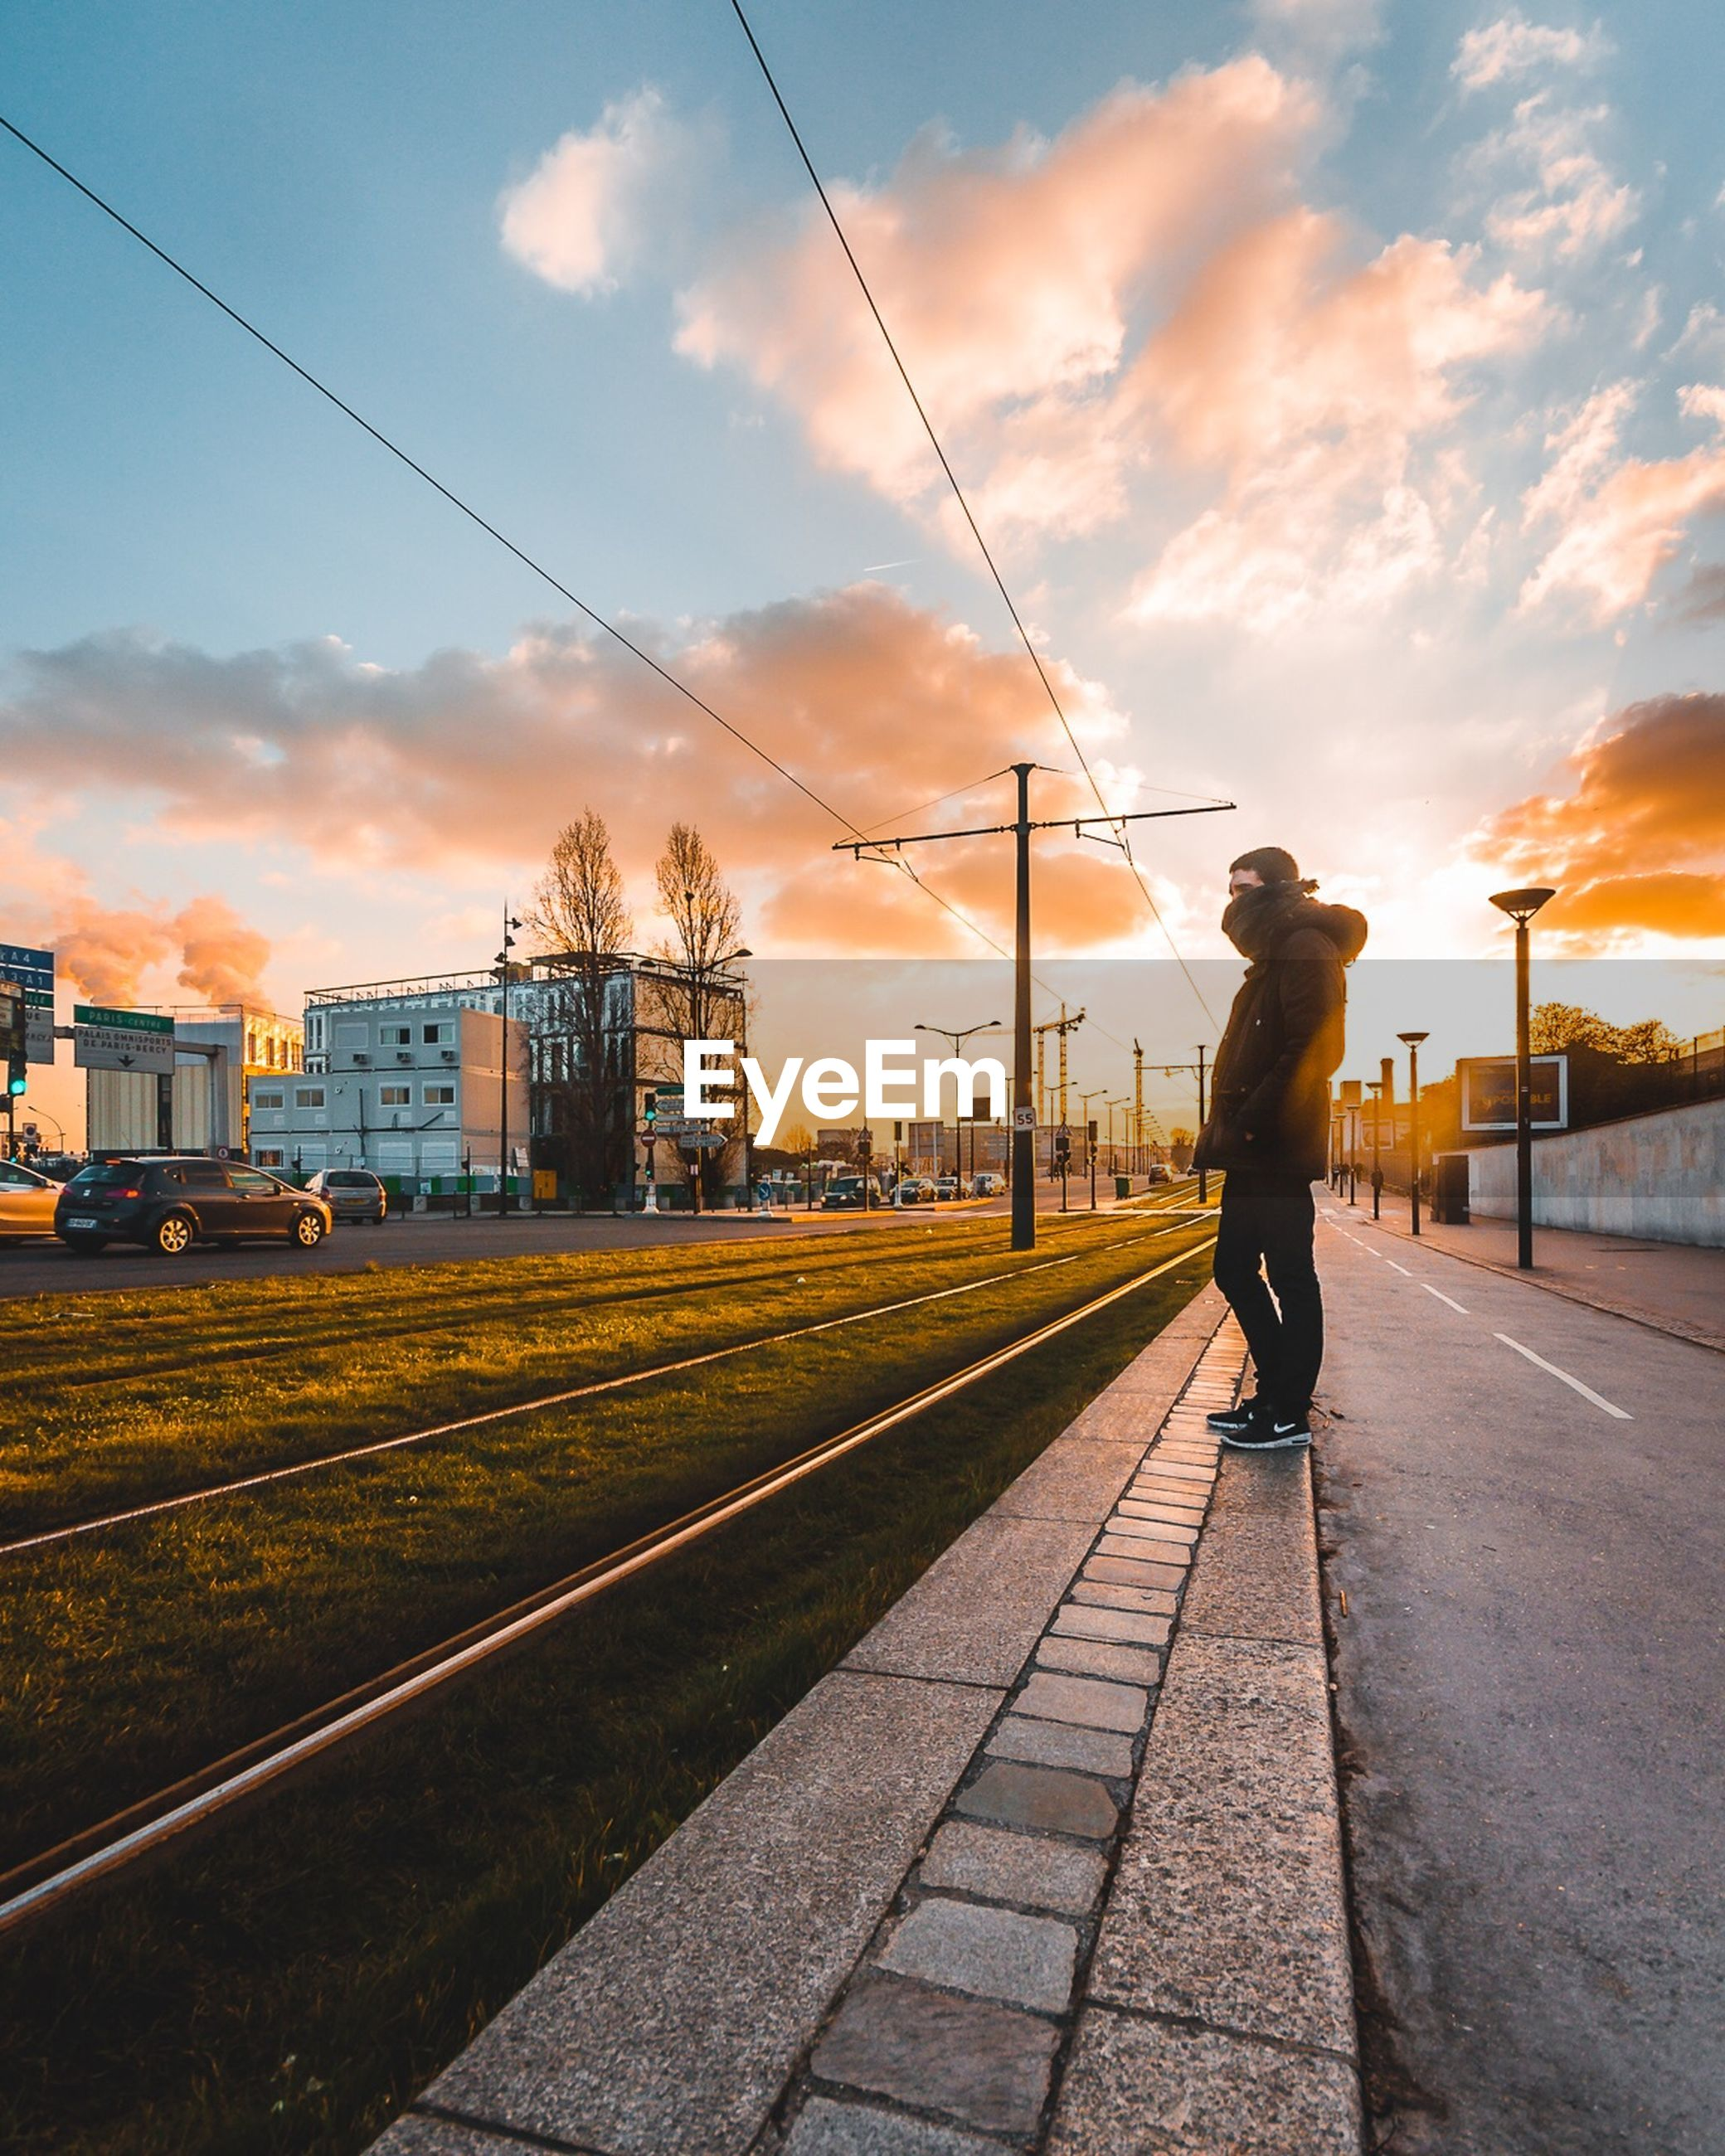 sky, cloud - sky, transportation, sunset, full length, railroad track, one person, rail transportation, mode of transport, real people, outdoors, cable, men, built structure, electricity pylon, architecture, nature, one man only, day, people